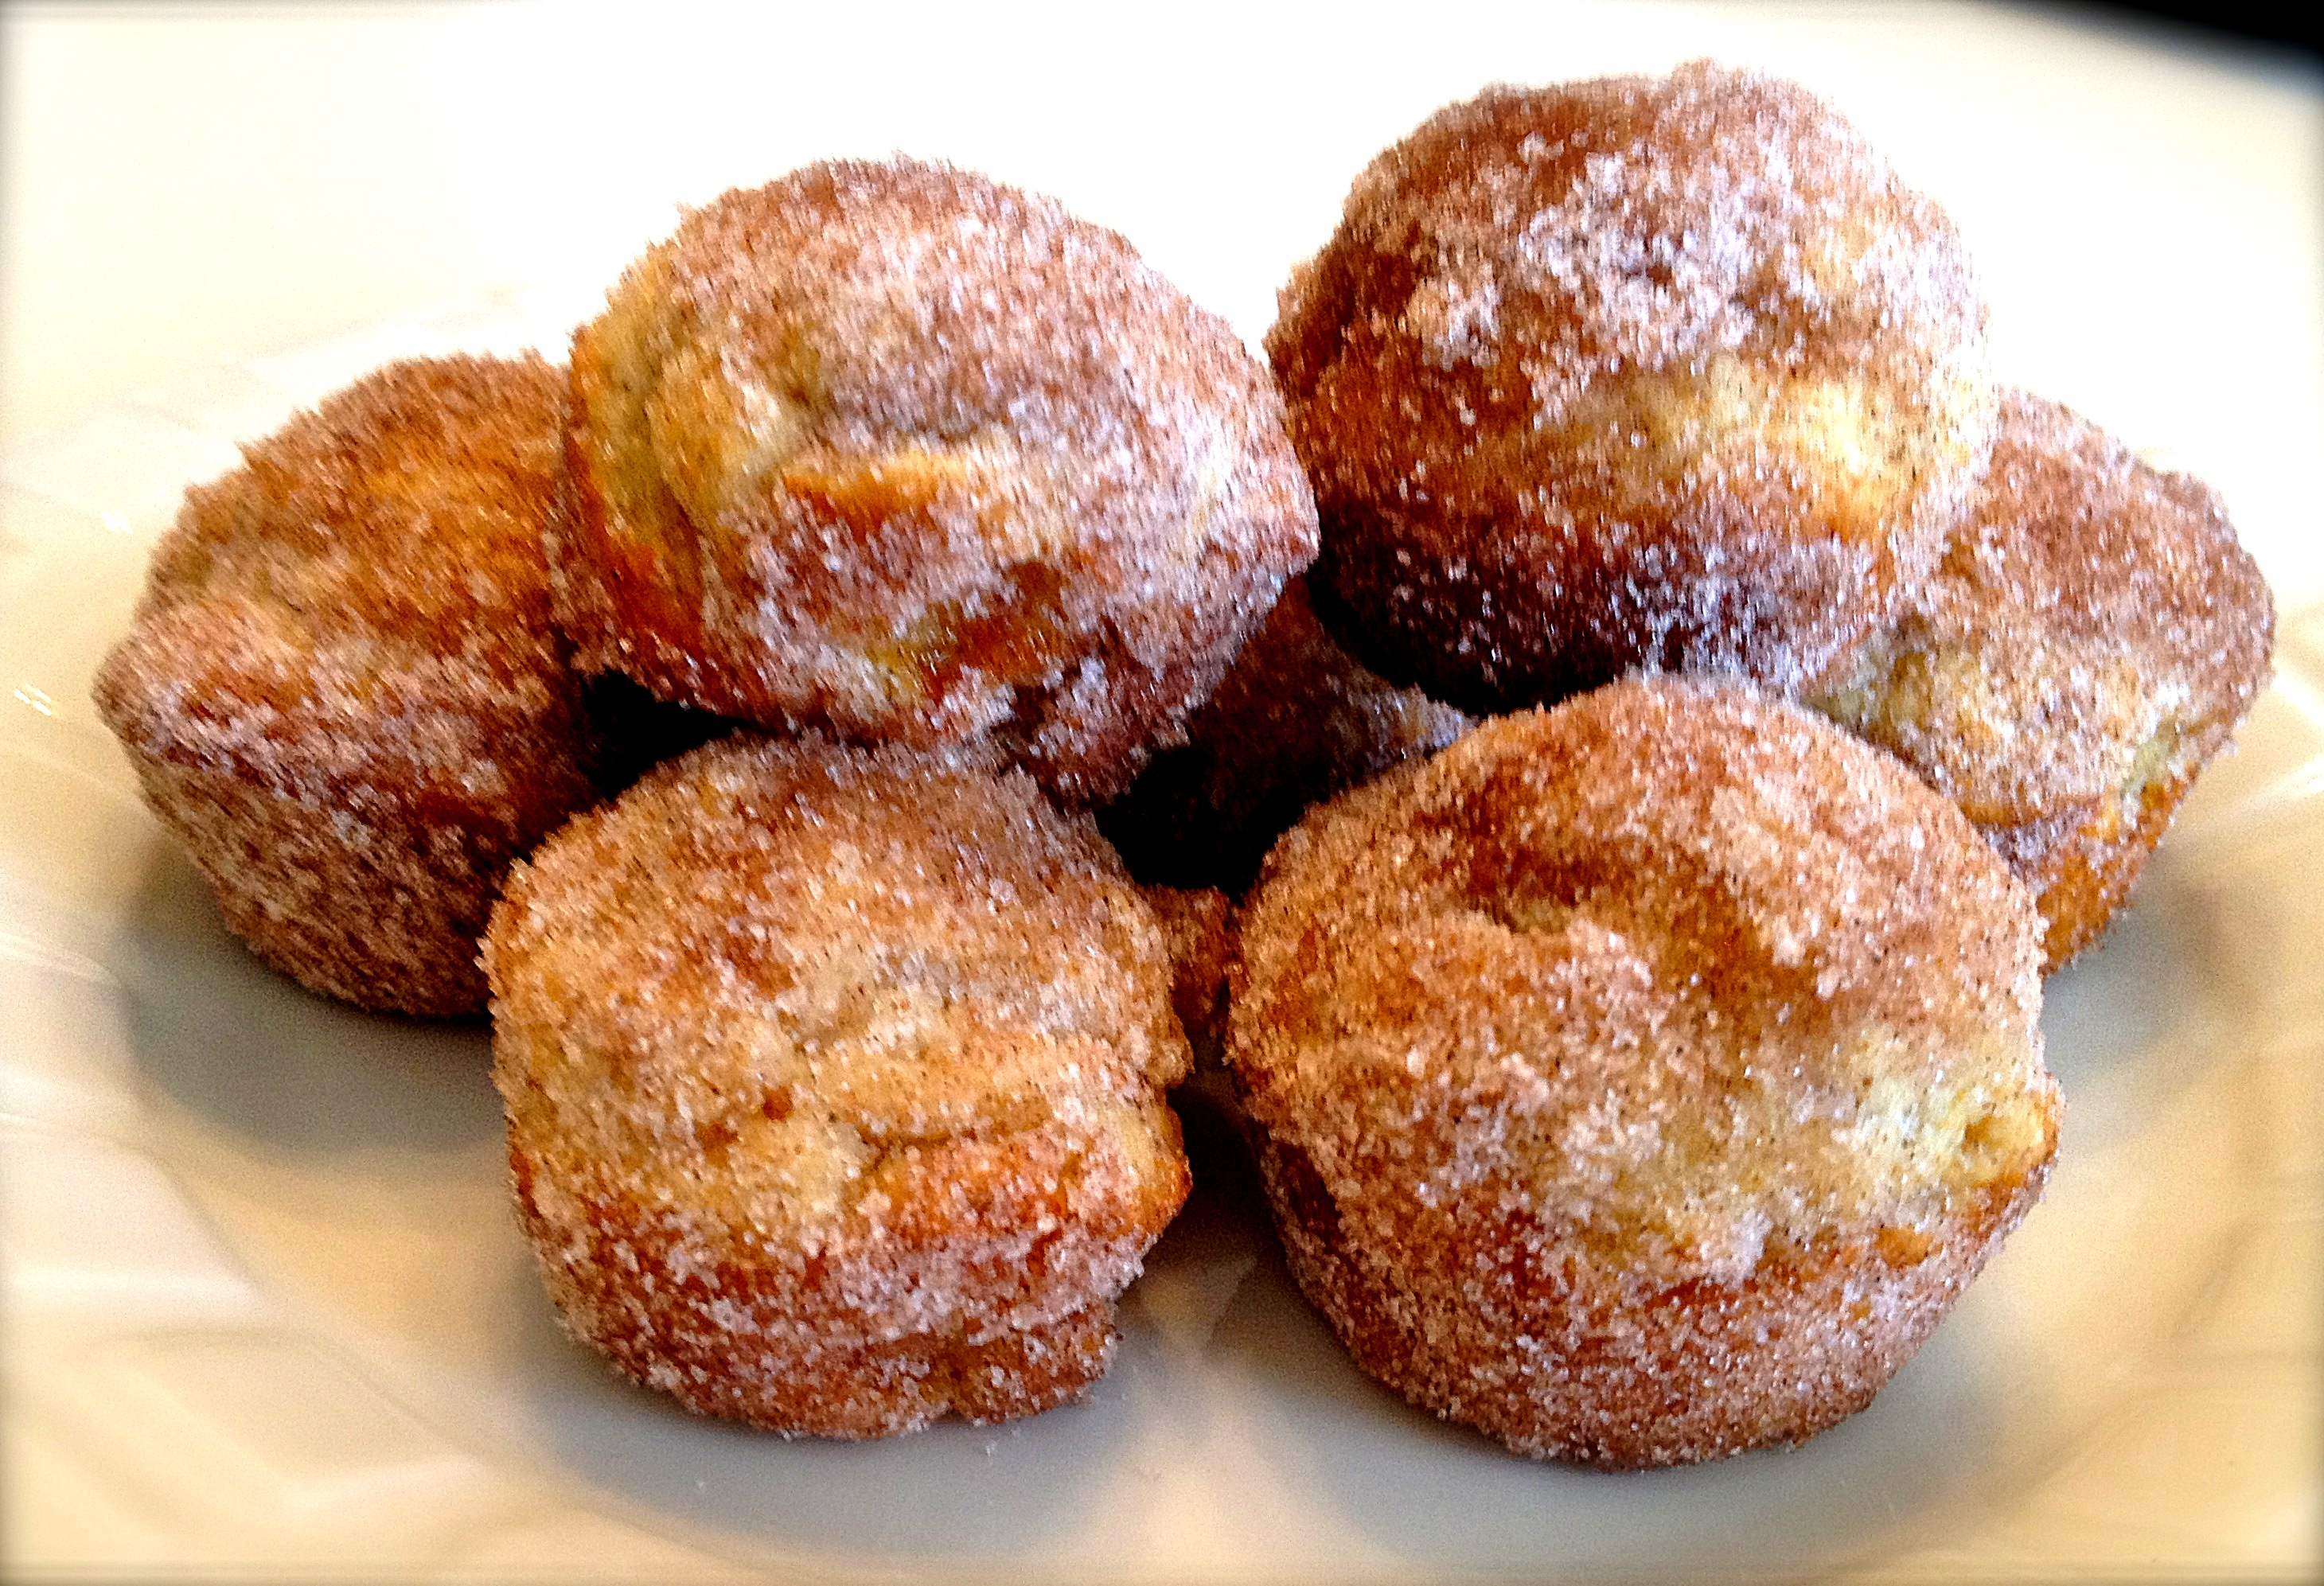 ... Guest Post] Mini Oven-Baked Apple Cinnamon Doughnuts | budgetbonviveur